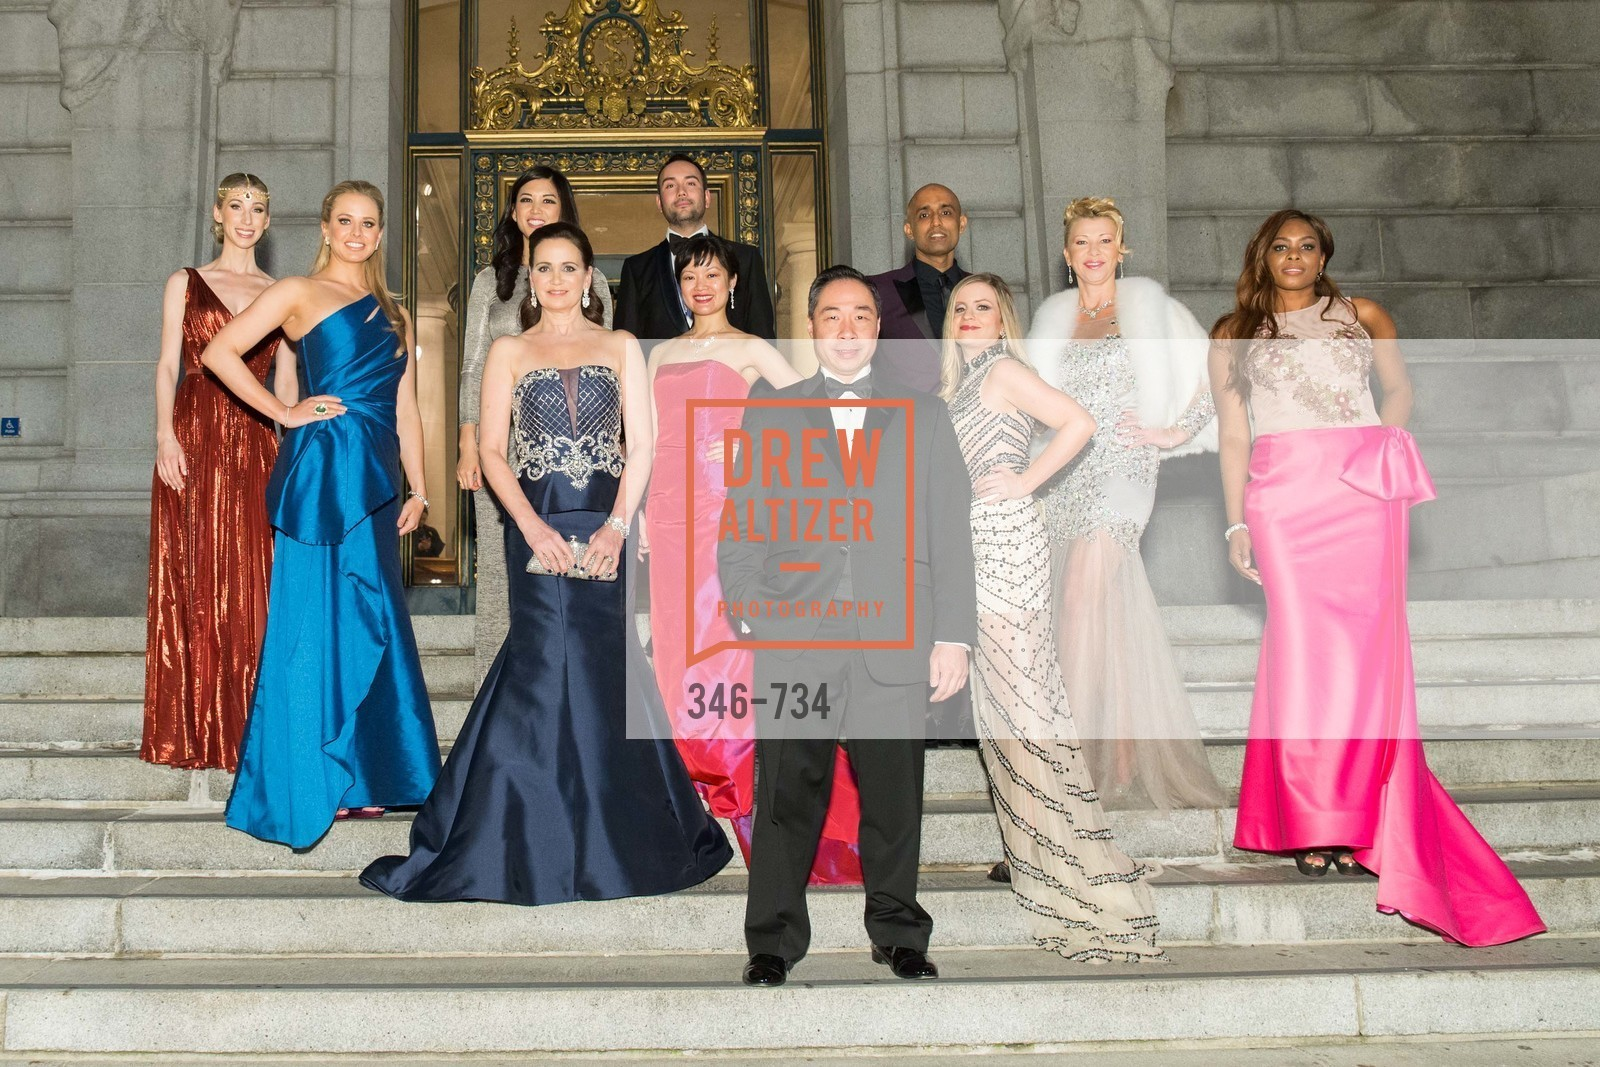 Maggie Winterfeldt Clark, Elizabeth Sgarrella, Emily Hu, Jane Burkhard, Christopher Correa, Susan Lin, Wlson Yan, Sunil Sharma, Julie Hall, Lena Gikkas, Vanessa Jean-Baptiste, San Francisco Ballet 2016 ENCORE! Opening Night Gala, San Francisco City Hall. 1 Dr Carlton B Goodlett Pl, January 21st, 2016,Drew Altizer, Drew Altizer Photography, full-service agency, private events, San Francisco photographer, photographer california